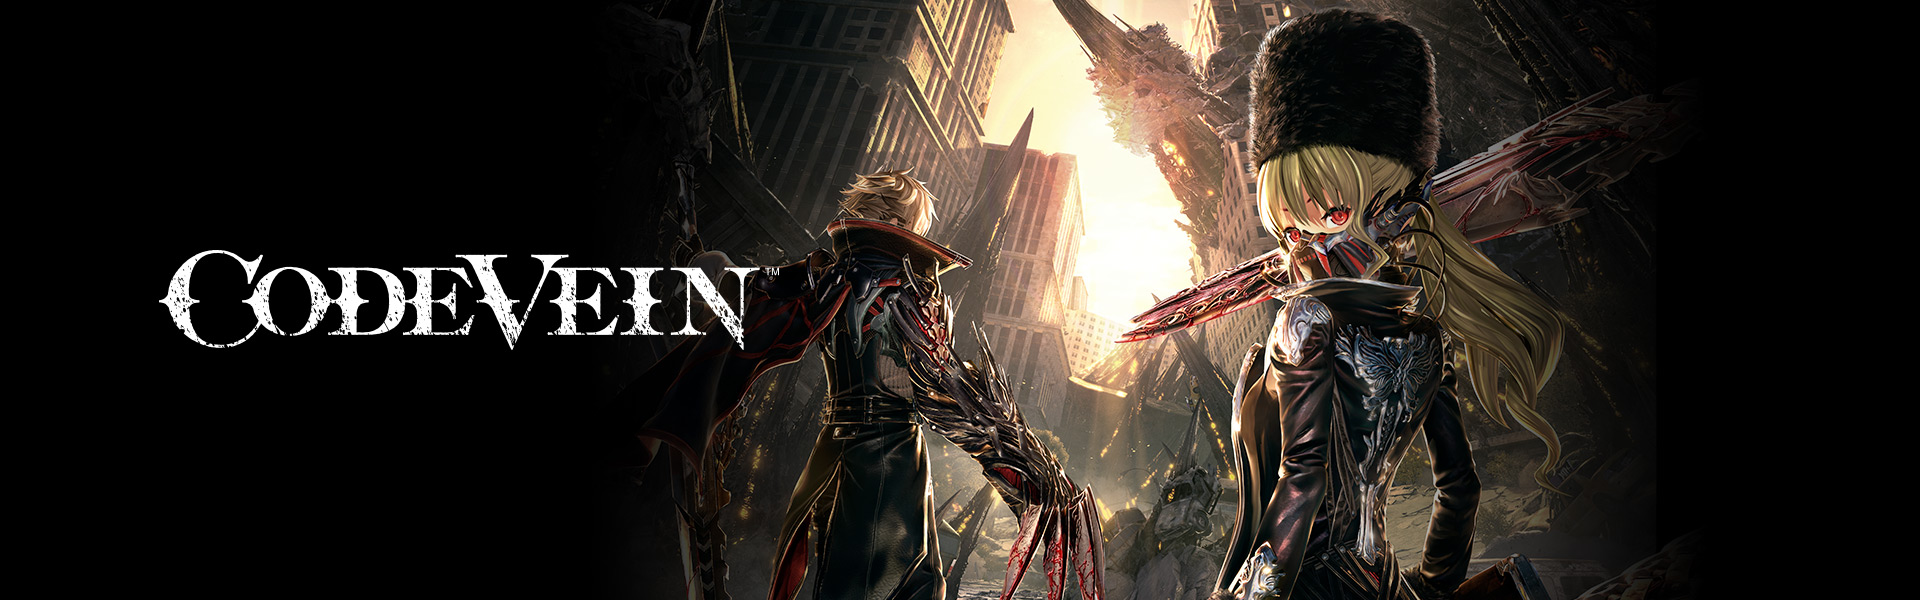 Code vein characters look back before walking through city wreckage